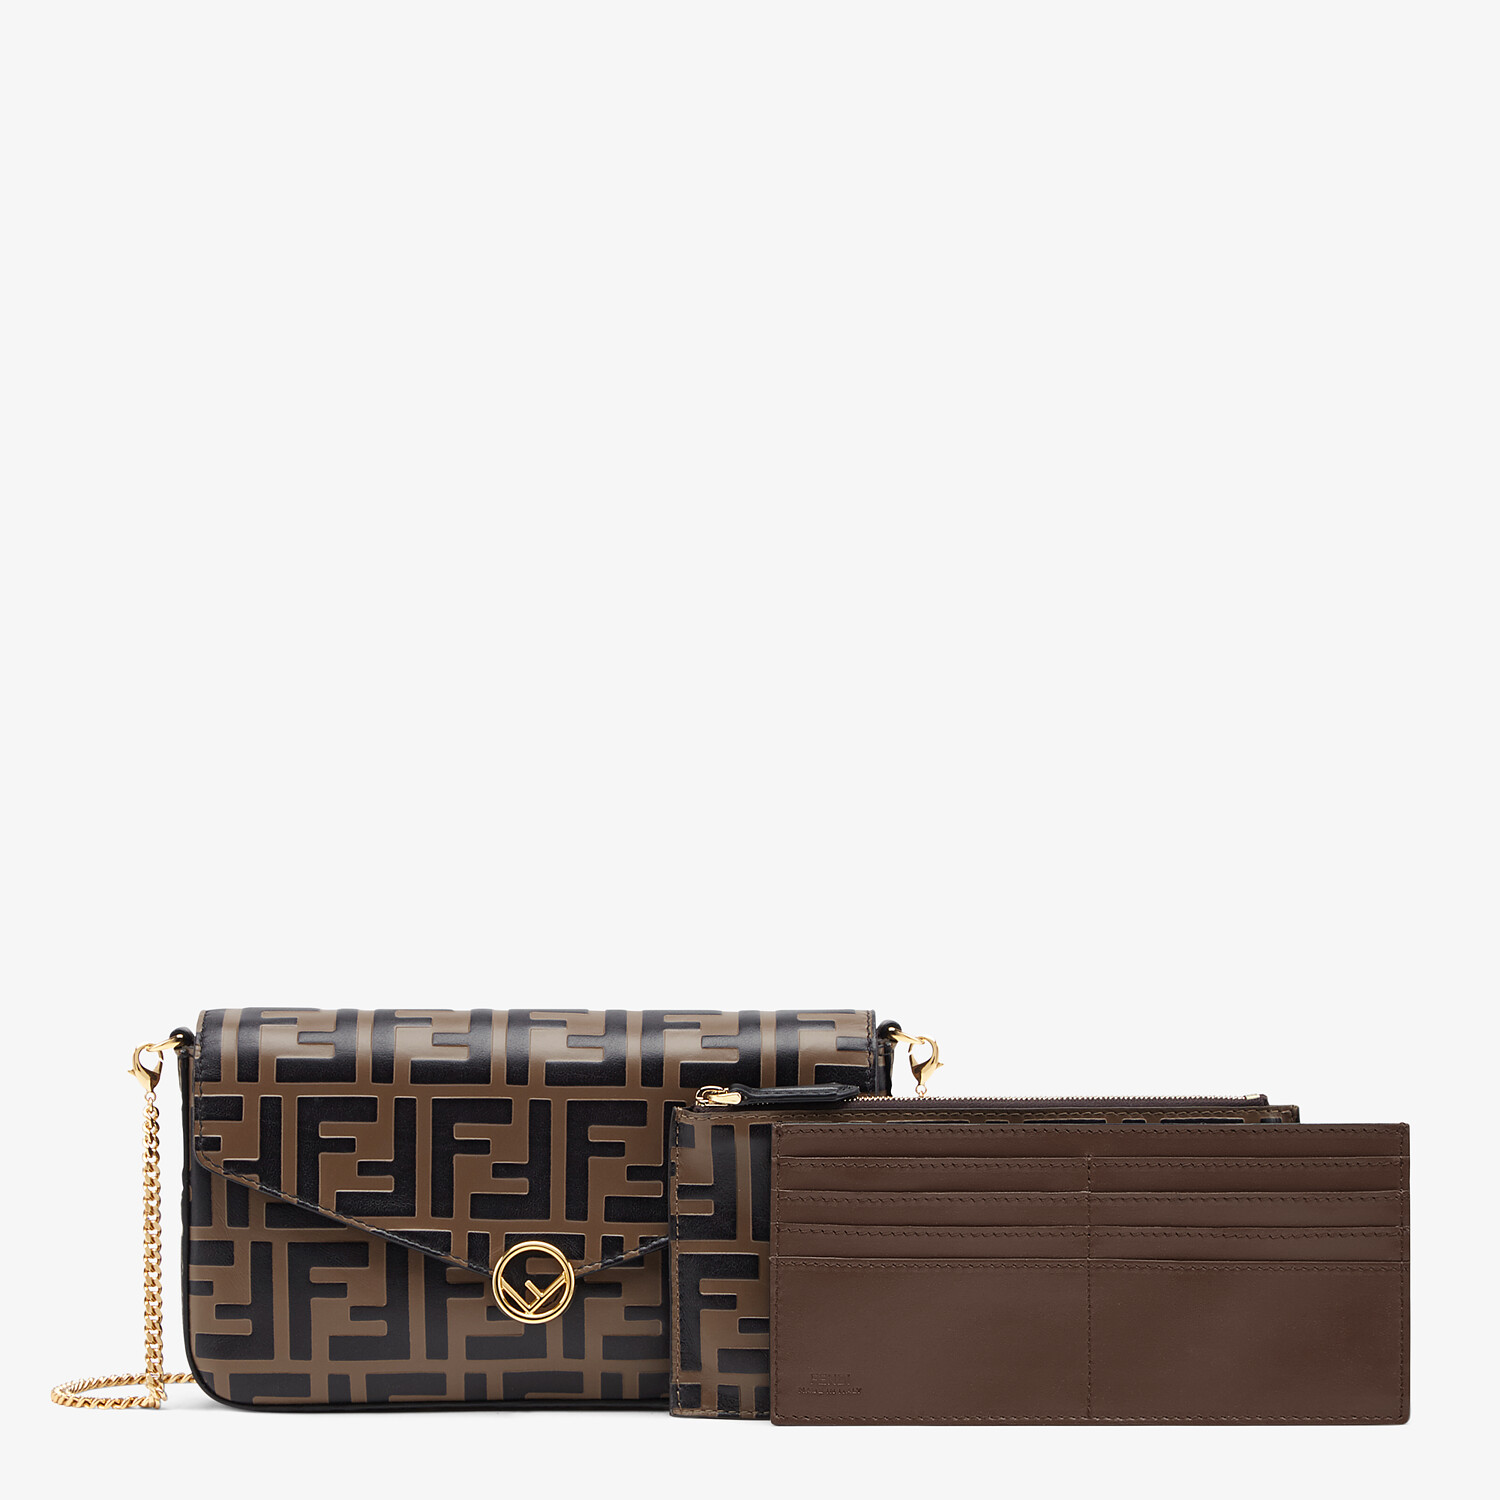 FENDI WALLET ON CHAIN WITH POUCHES - Brown leather mini-bag - view 2 detail